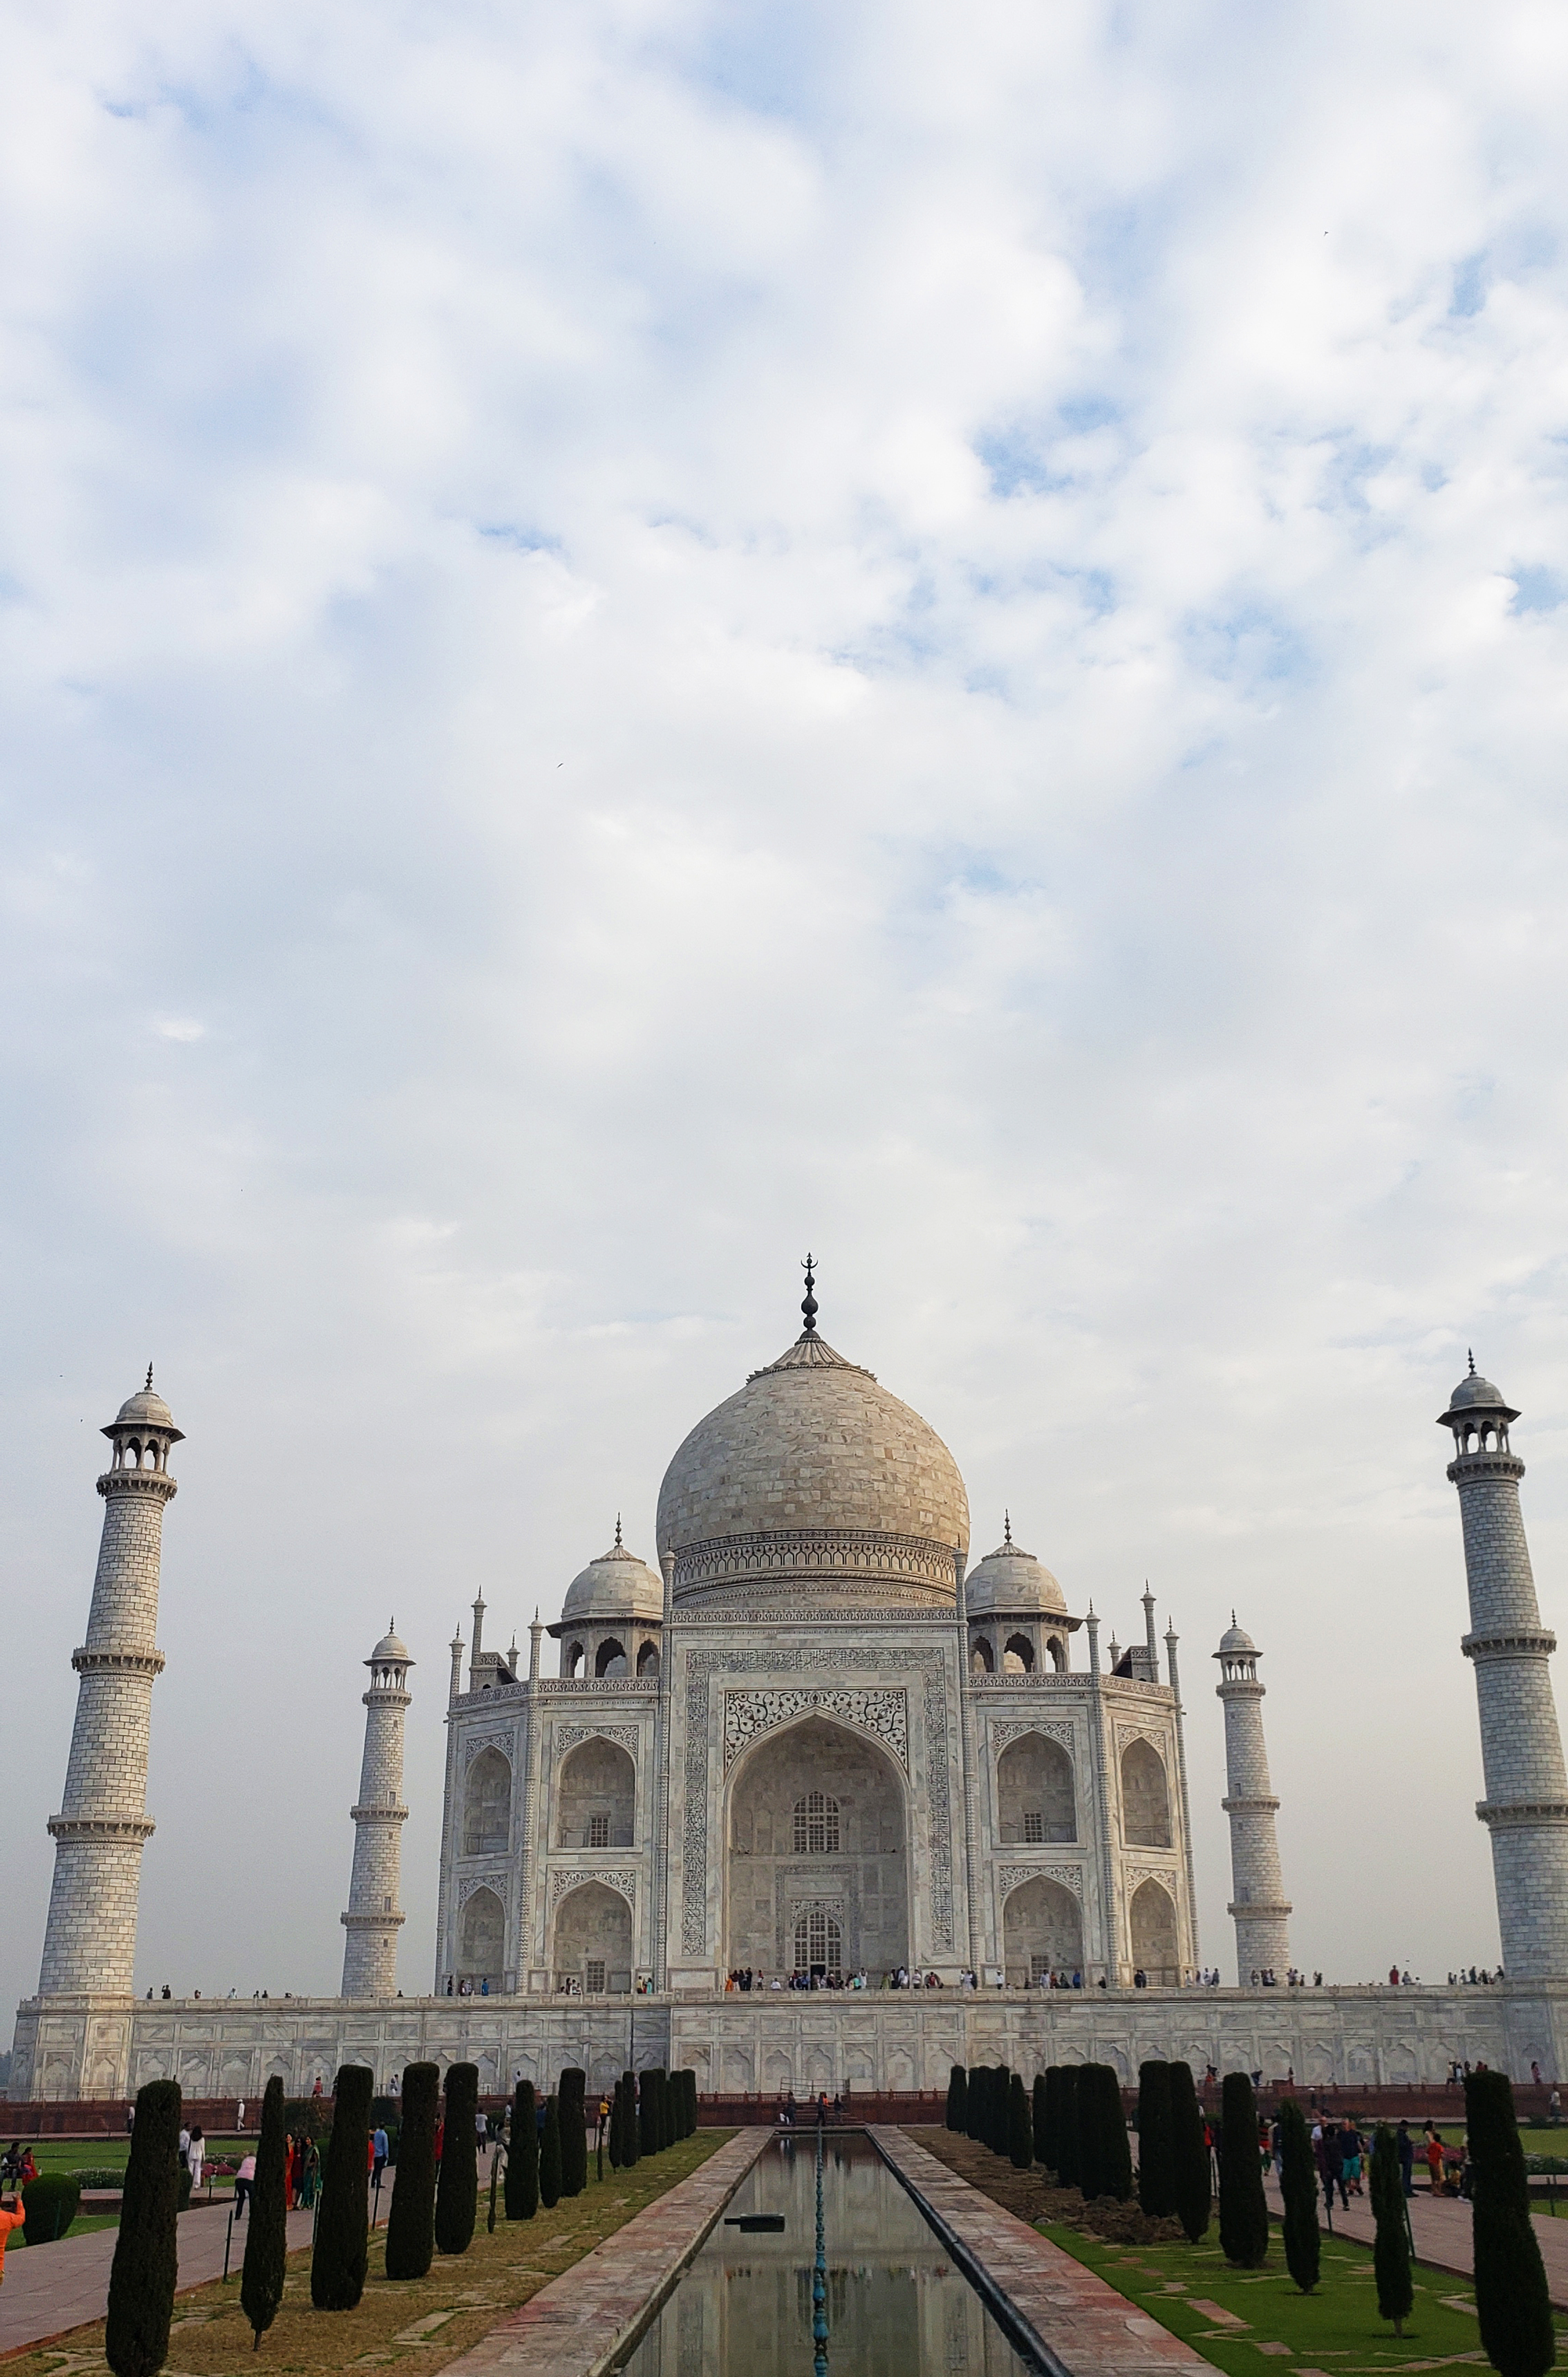 15_Reasons_Why_You_Should_Visit_India_At_Least_Once_In_Your_Life